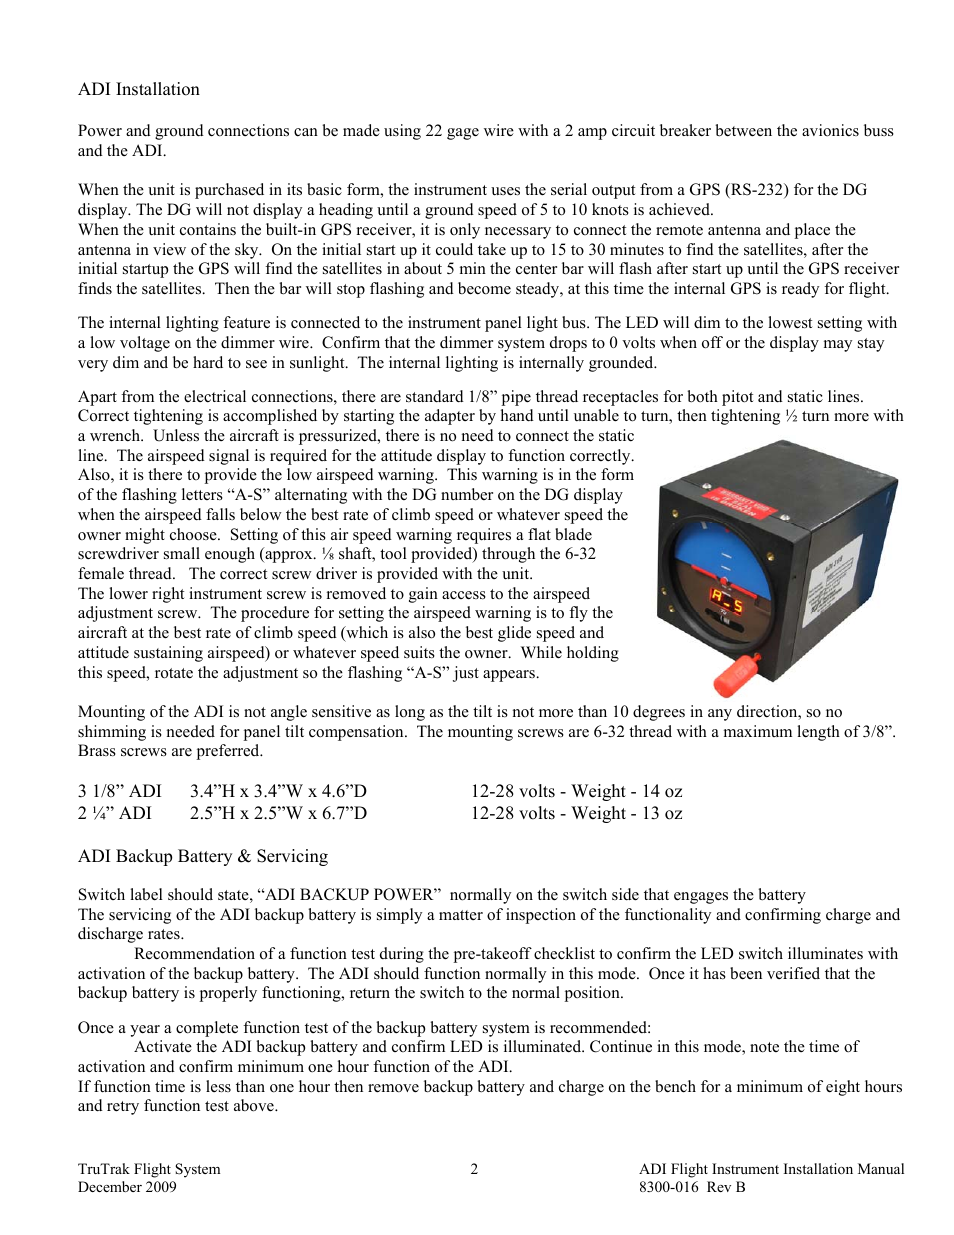 Adi Installation Backup Battery Servicing Trutrak User Circuit Page 1 Manual 4 16